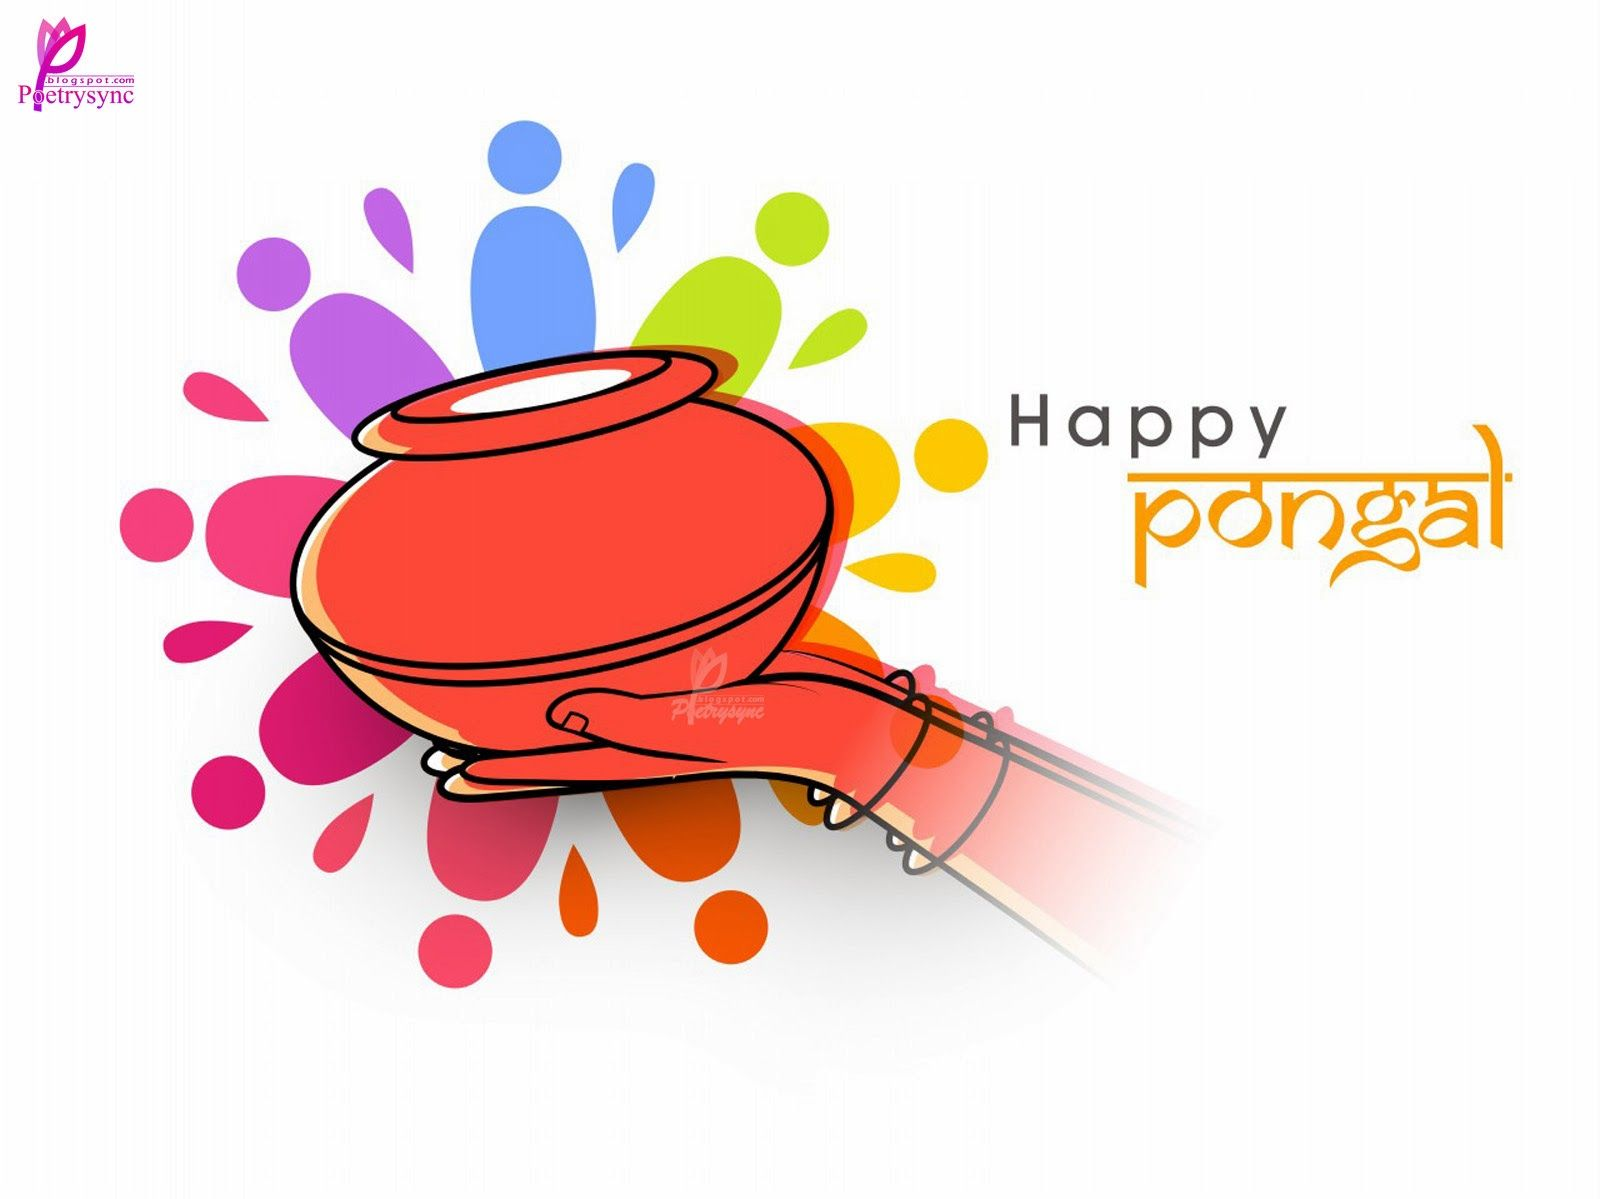 Happy Pongal Festival Wishes Card Image Wallpaper Pongal Wishes